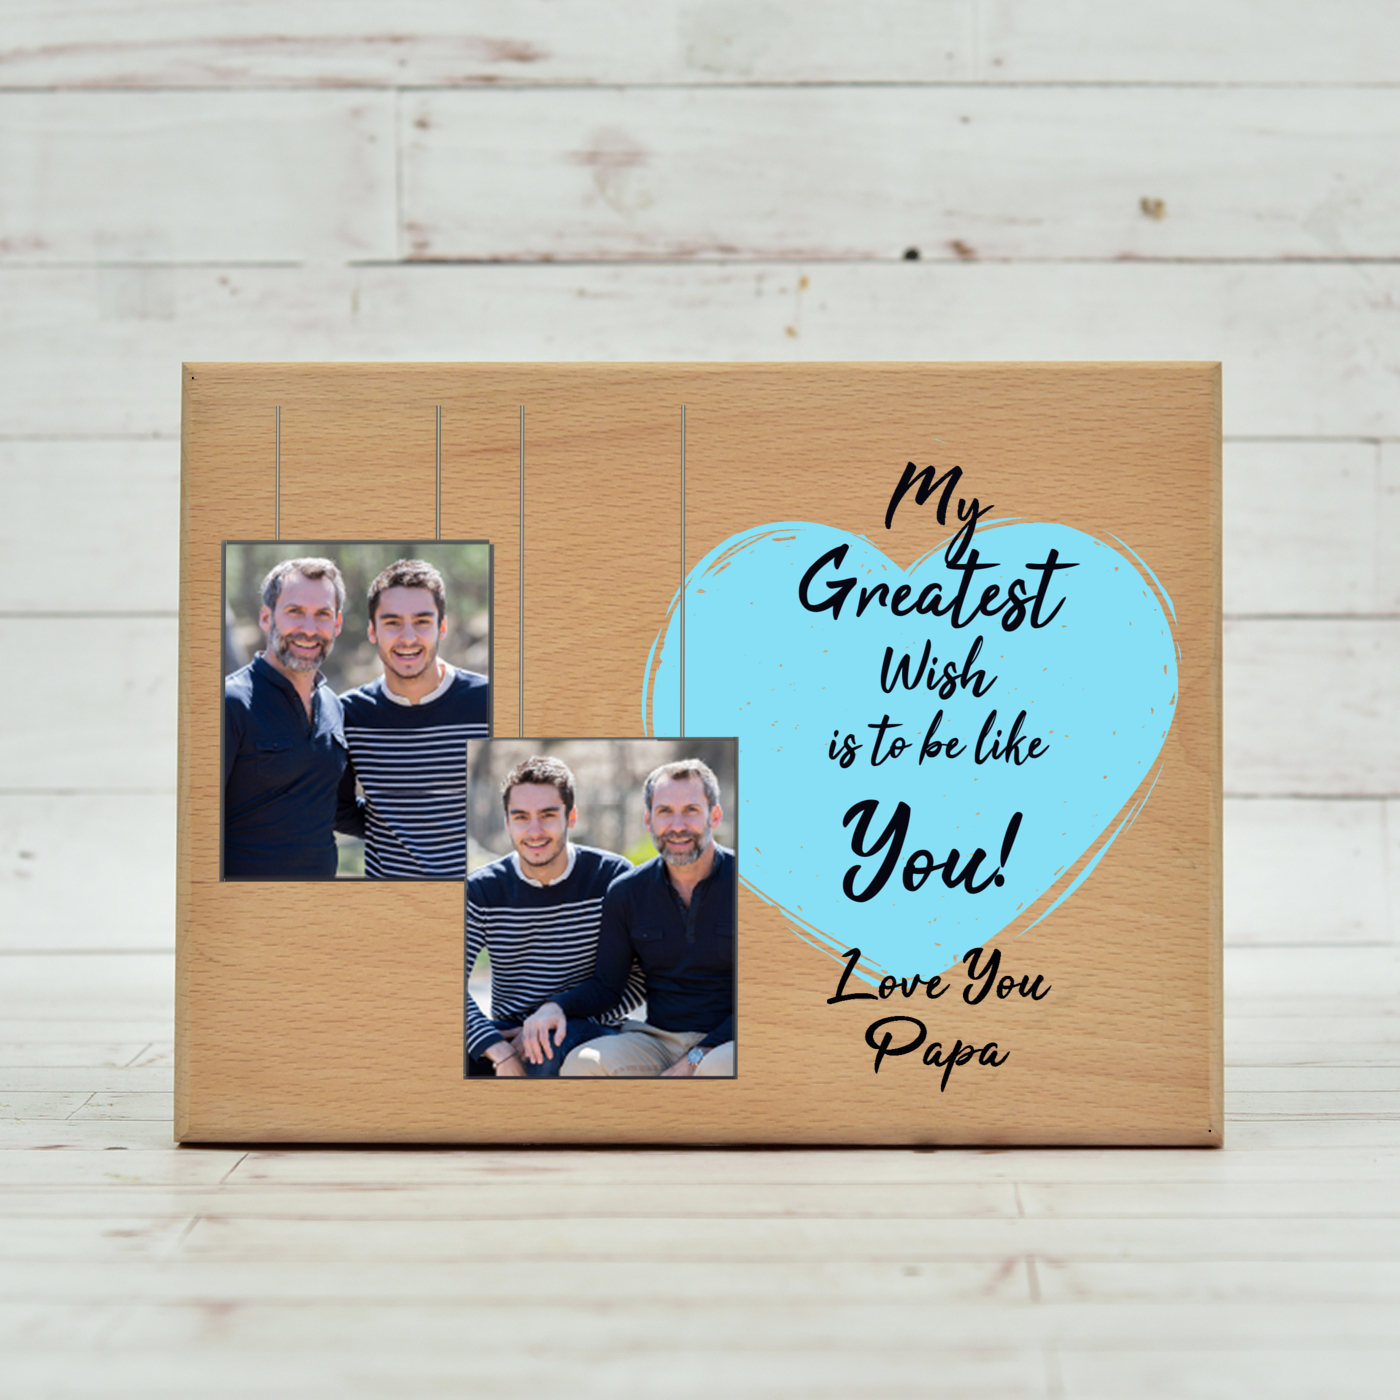 p-greatest-dad-personalized-wooden-photo-frame-95050-m-IGP